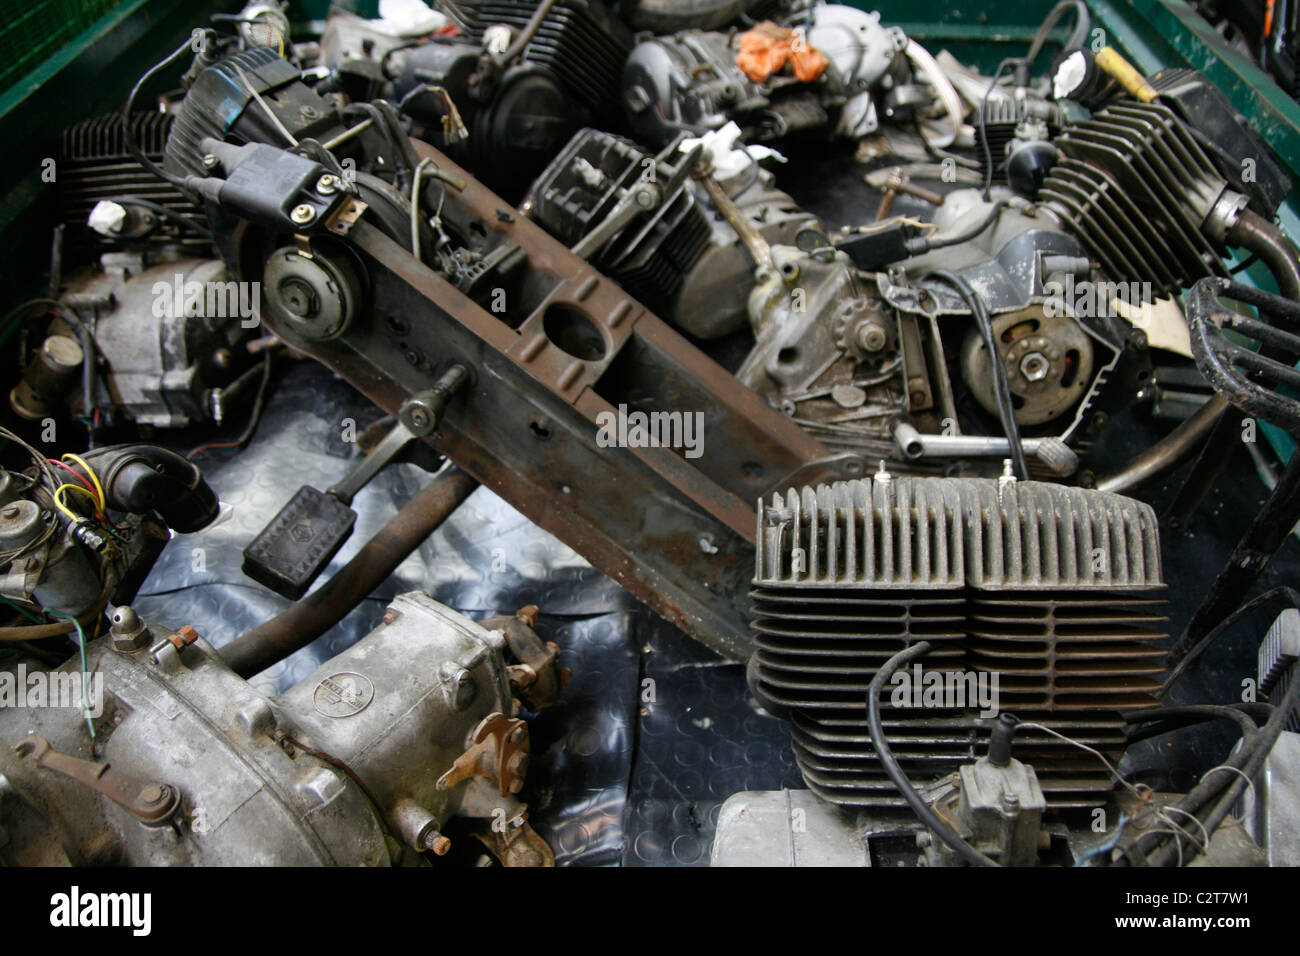 spare parts for sale at vintage car show event Stock Photo: 36183085 ...